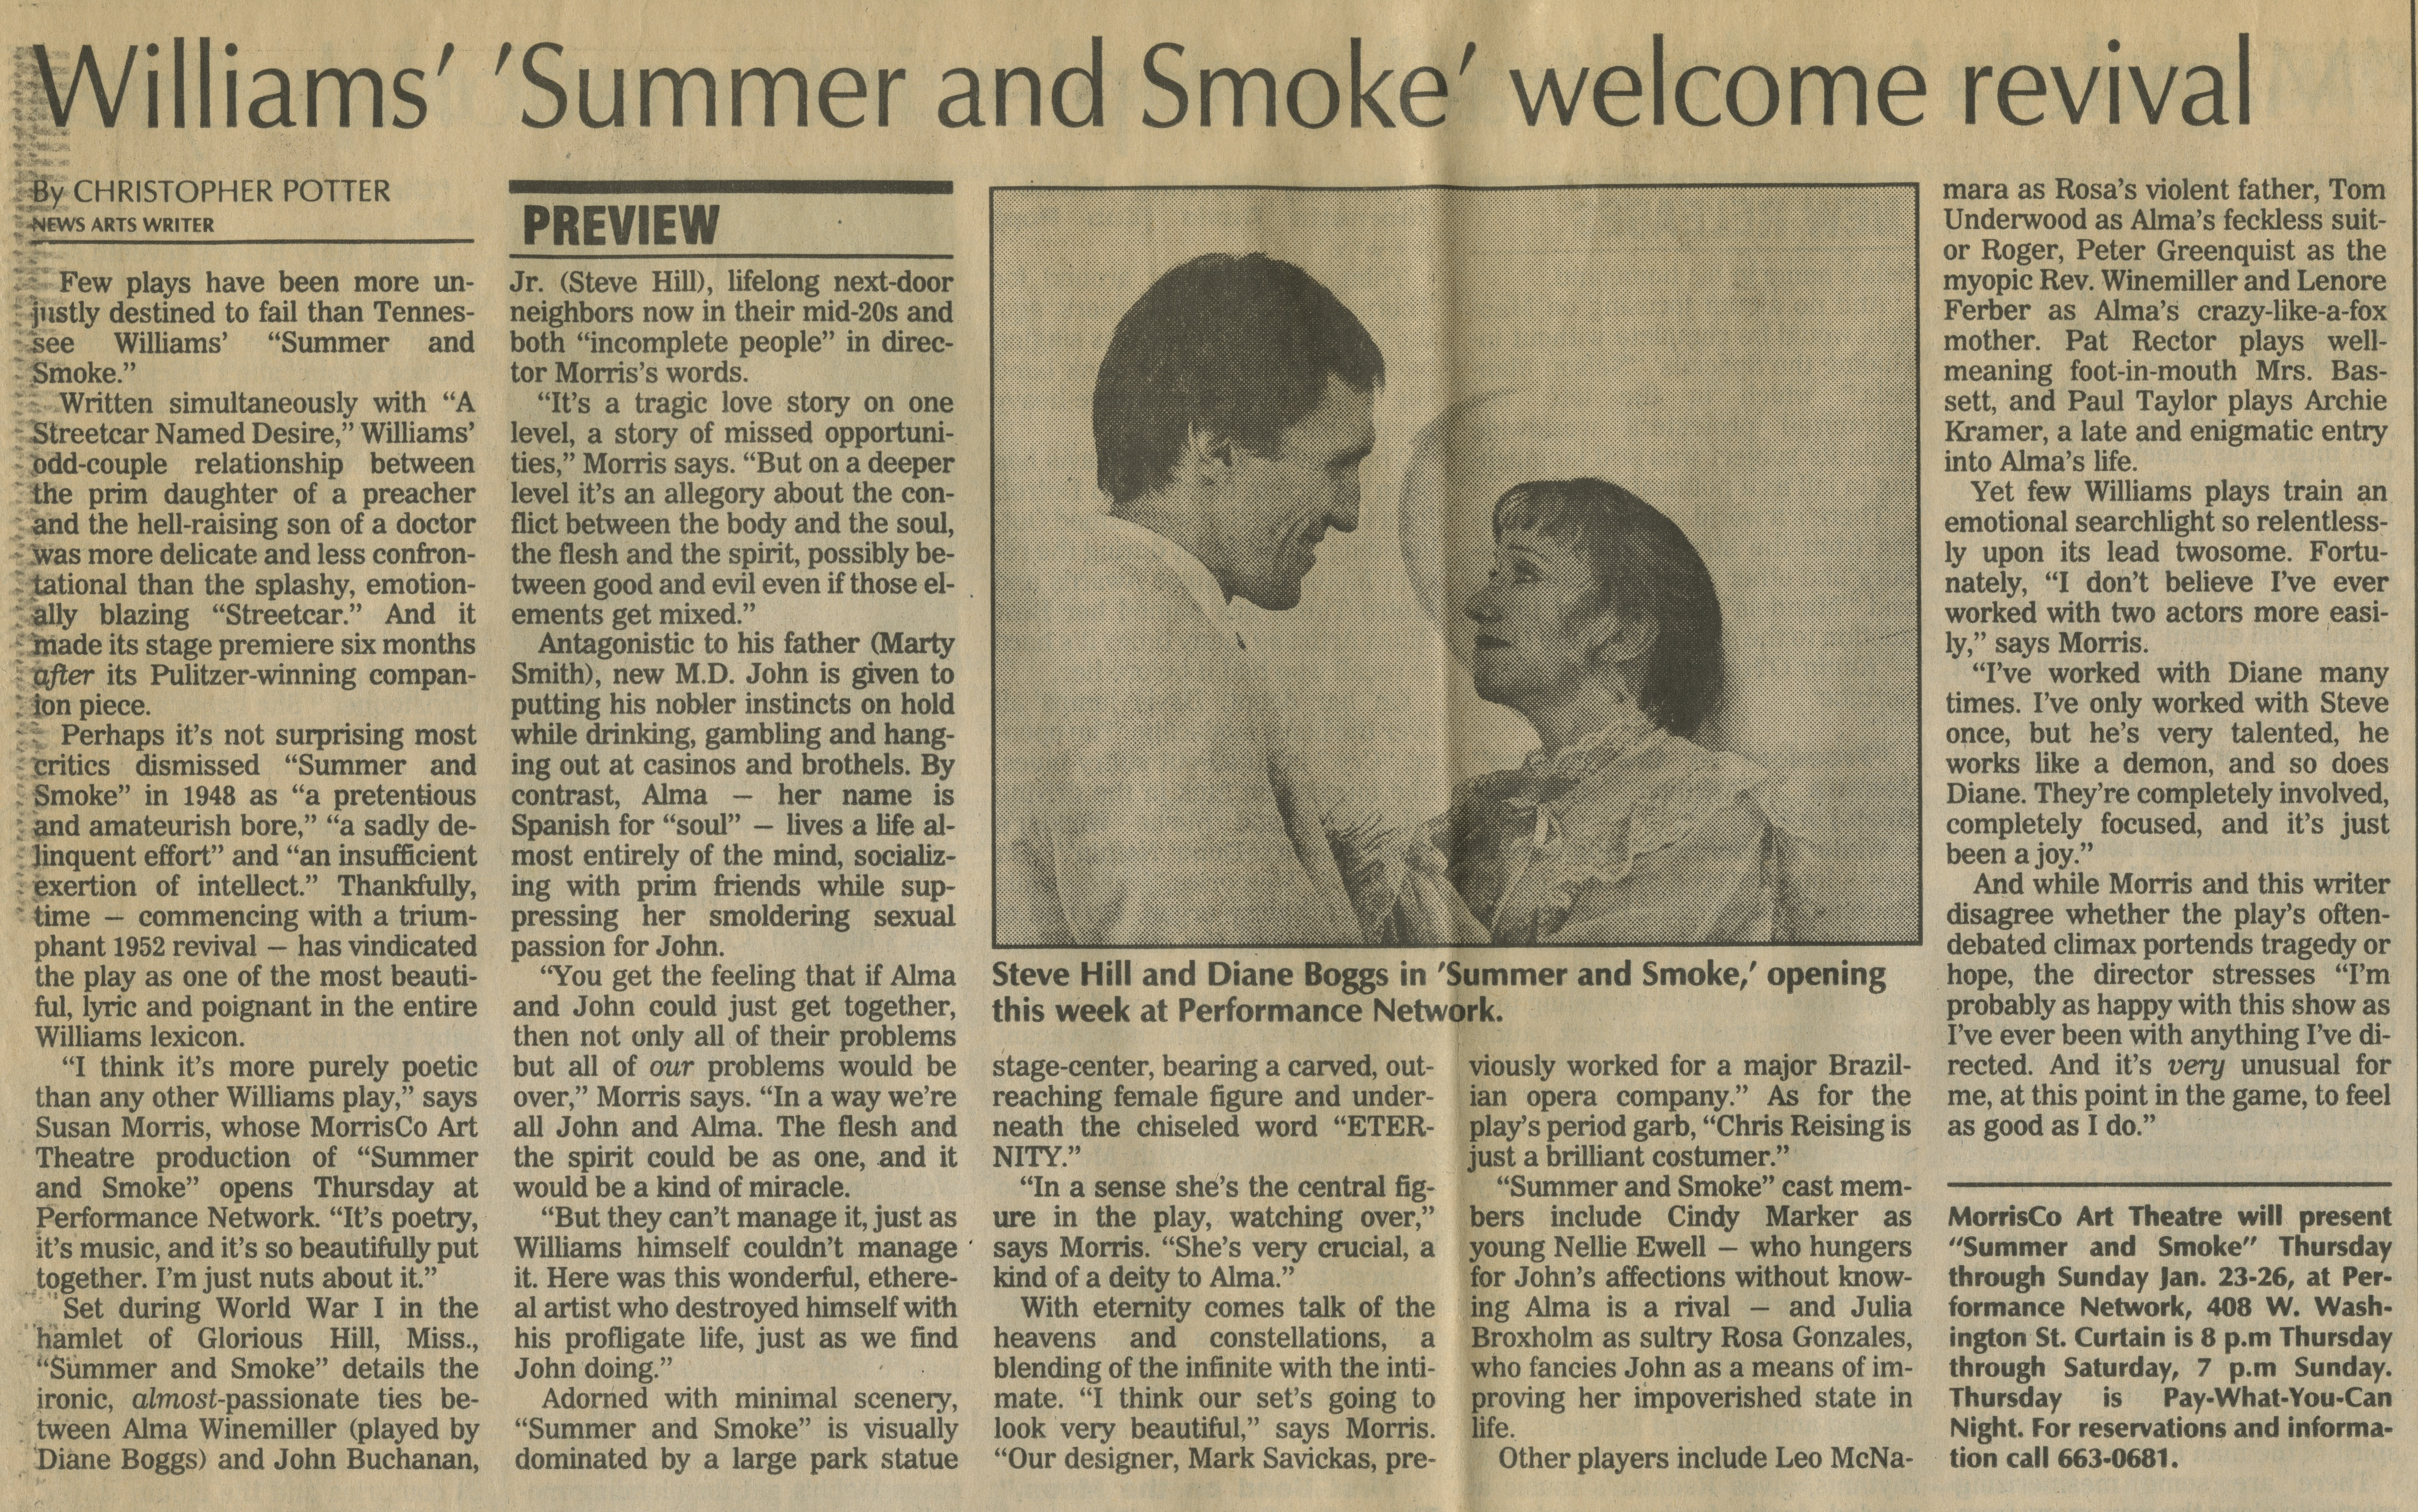 Williams' 'Summer and Smoke' welcome revival image